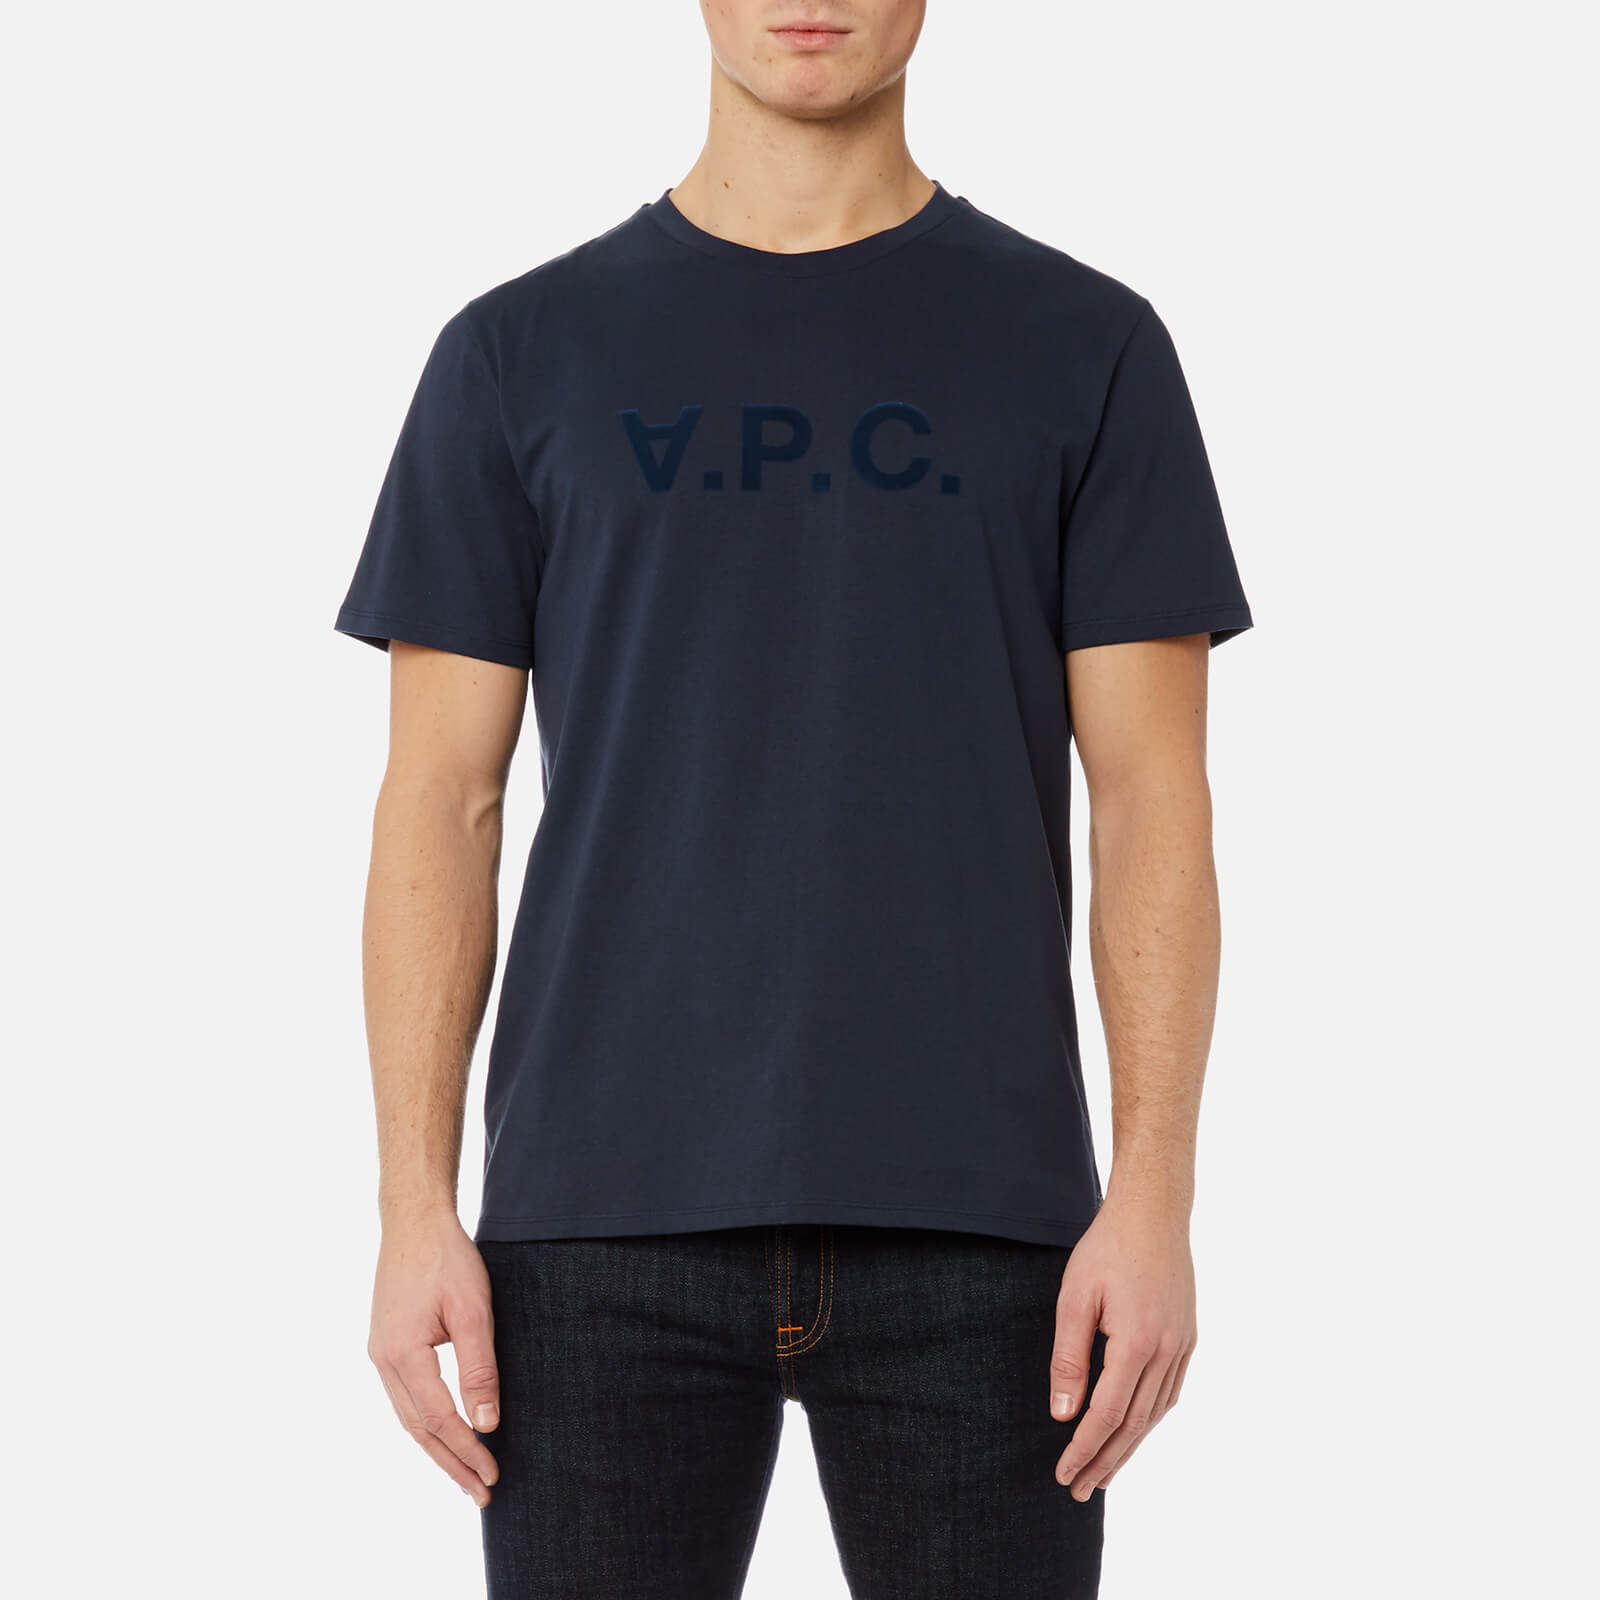 ca61f155f864 A.P.C. Men's VPC T-Shirt - Dark Navy - Free UK Delivery over £50